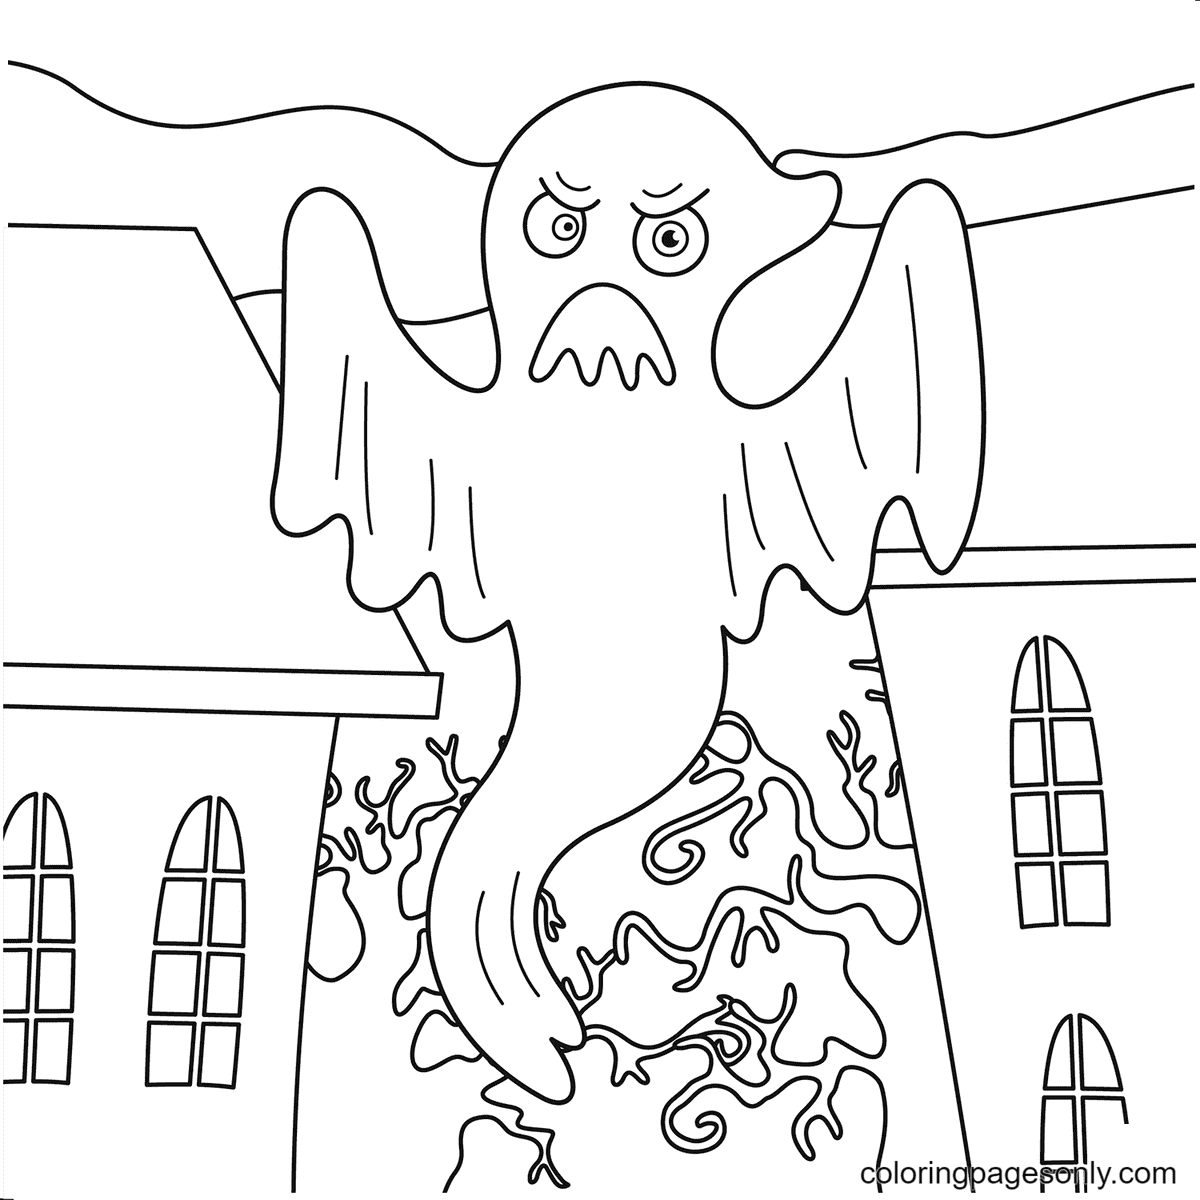 Scary ghost on Halloween Coloring Page